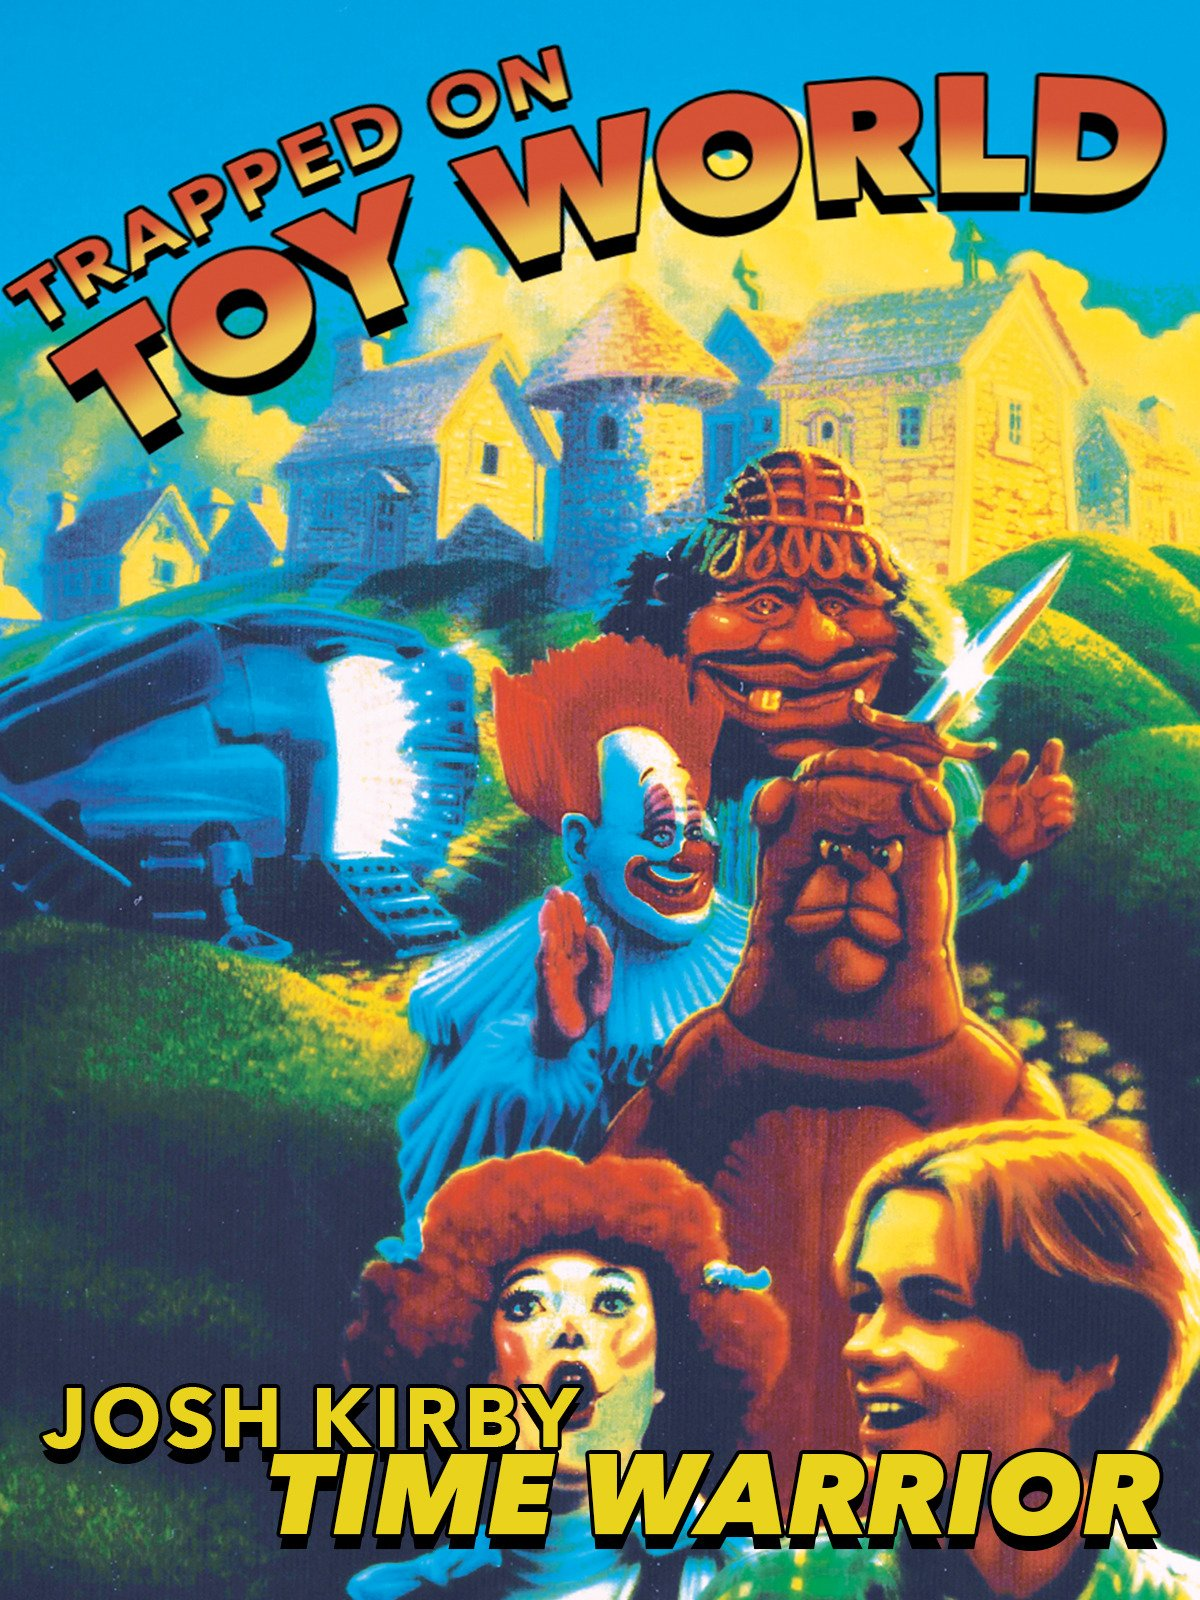 Josh Kirby Time Warrior: Trapped in Toy World